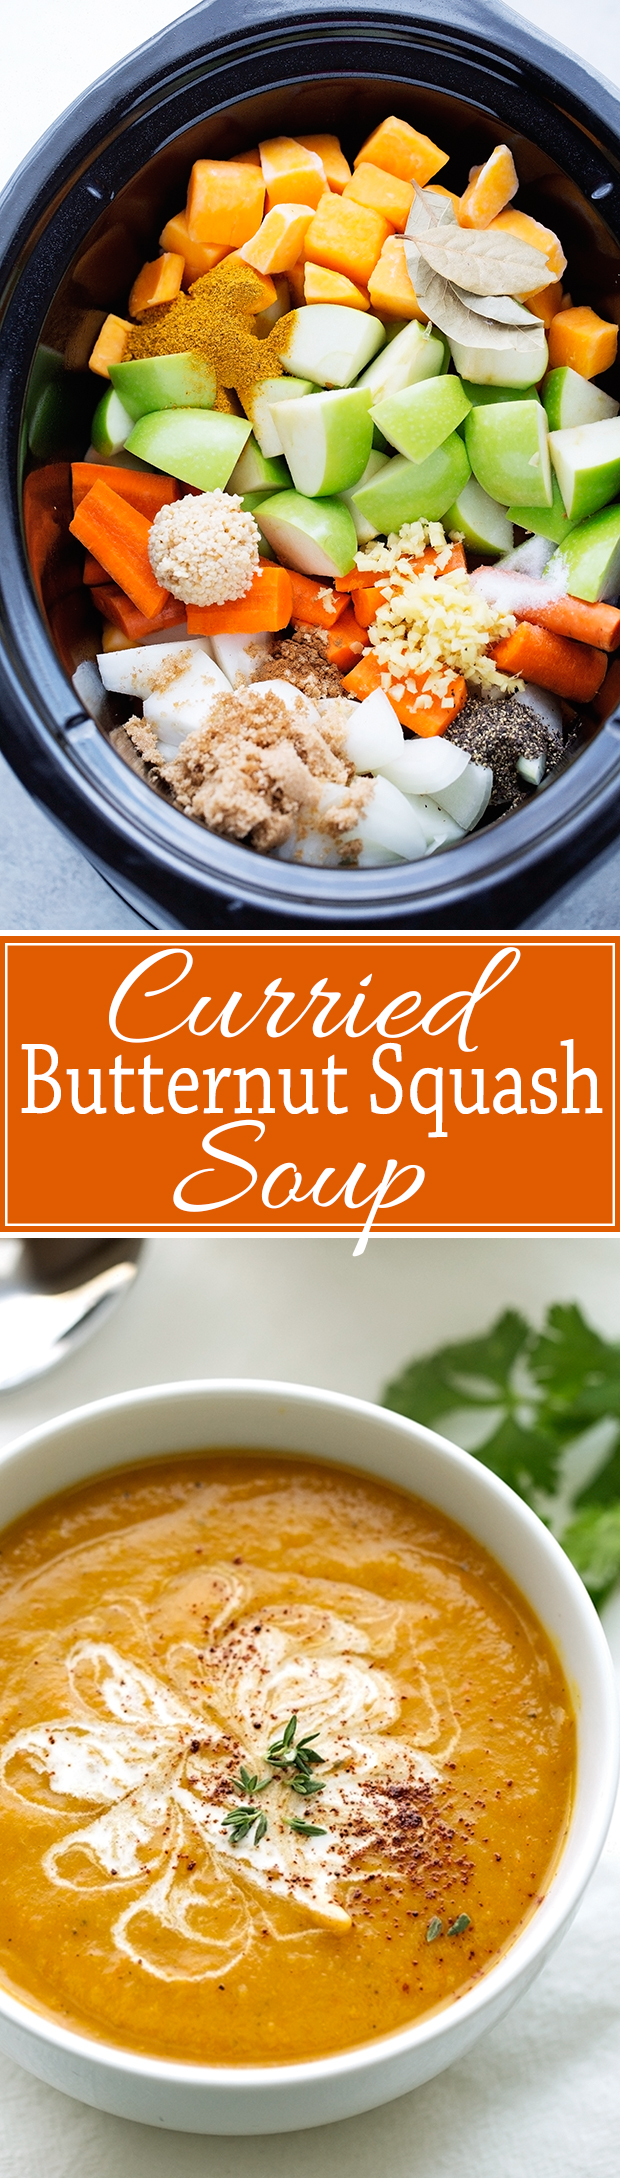 Curried Butternut Squash Soup {Slow Cooker} - Smooth, creamy, and super comforting curried Butternut Squash Soup made in the slow cooker. #vegetarian #slowcooker #crockpot #butternutsquashsoup   Littlespicejar.com